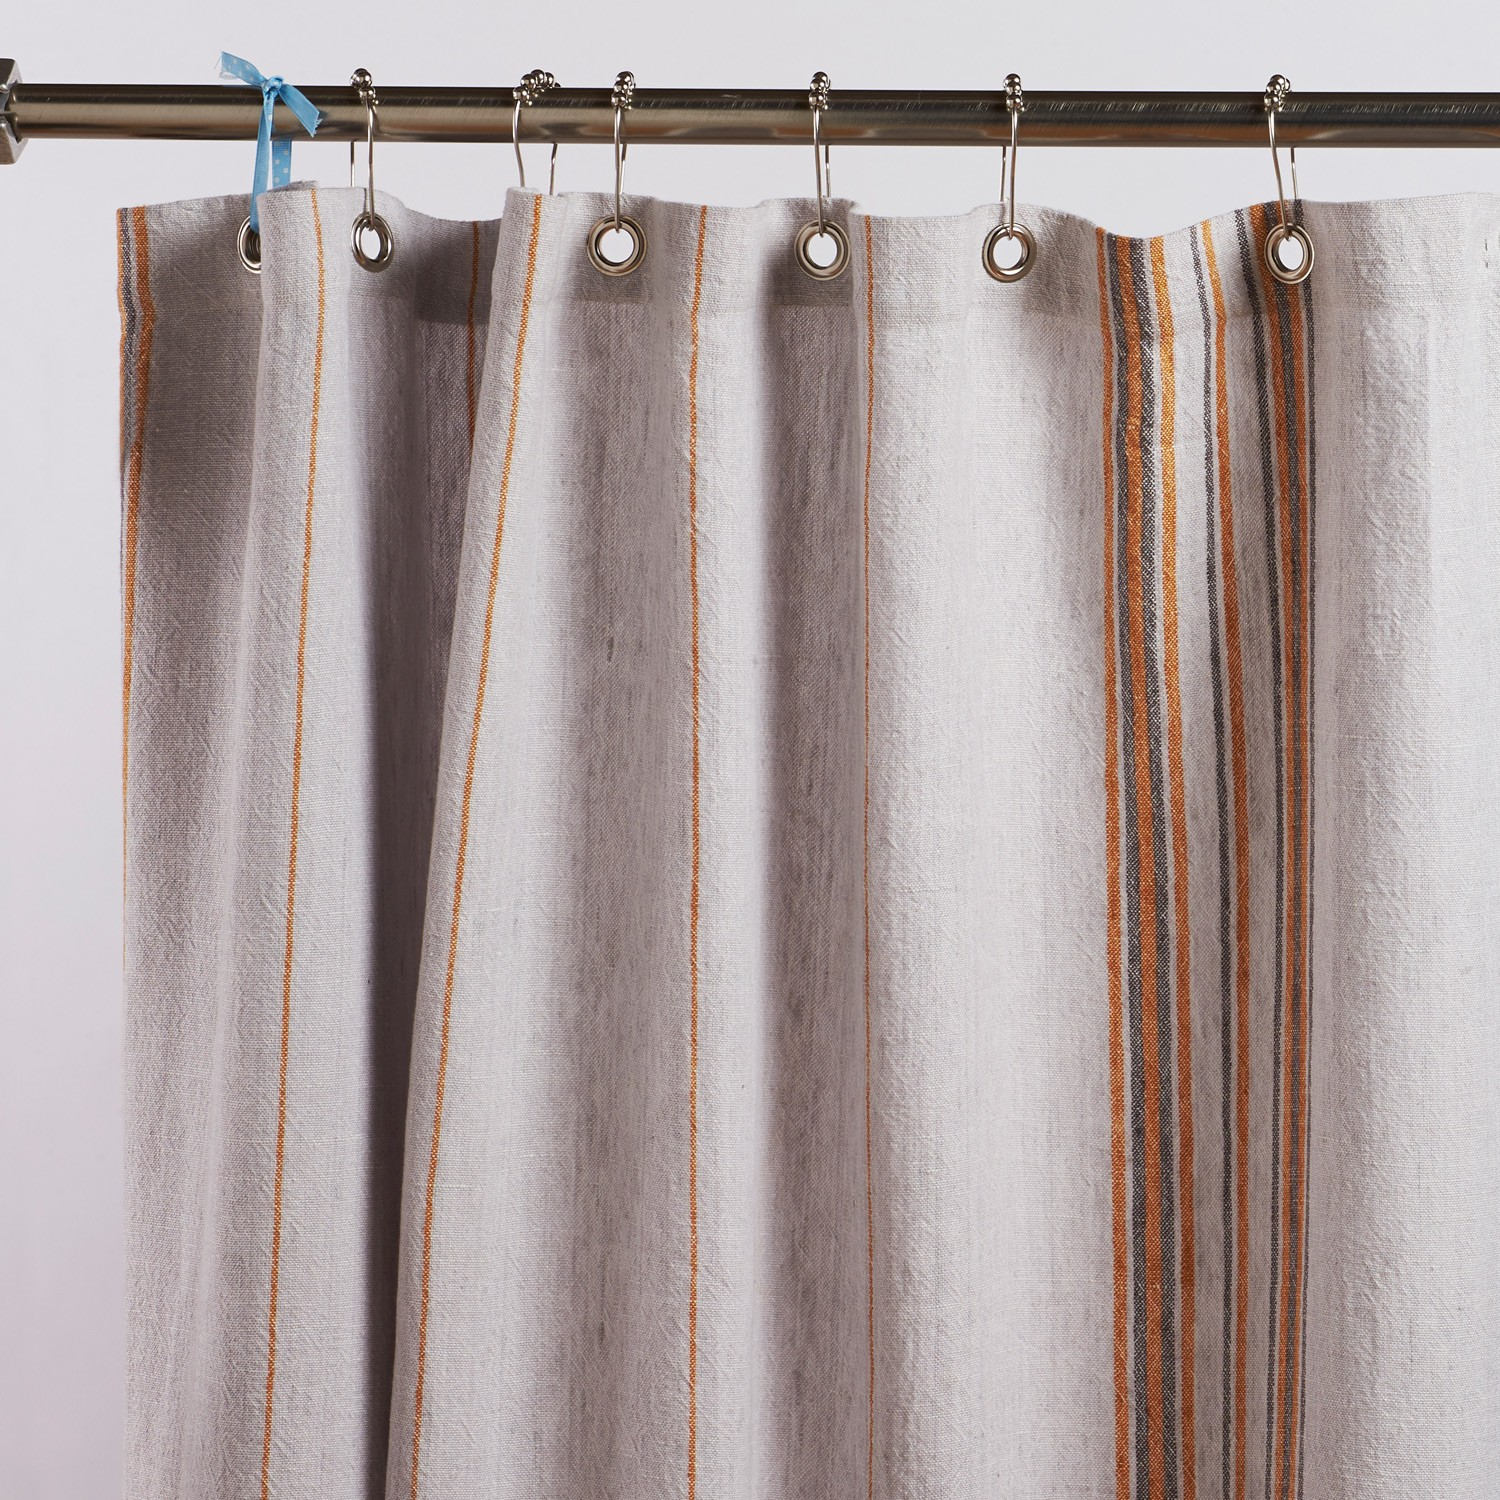 Exciting Bathroom Decor Ideas with Shower Curtain Tension Rod: Extendable Shower Curtain Rod | Short Curved Shower Rod | Shower Curtain Tension Rod